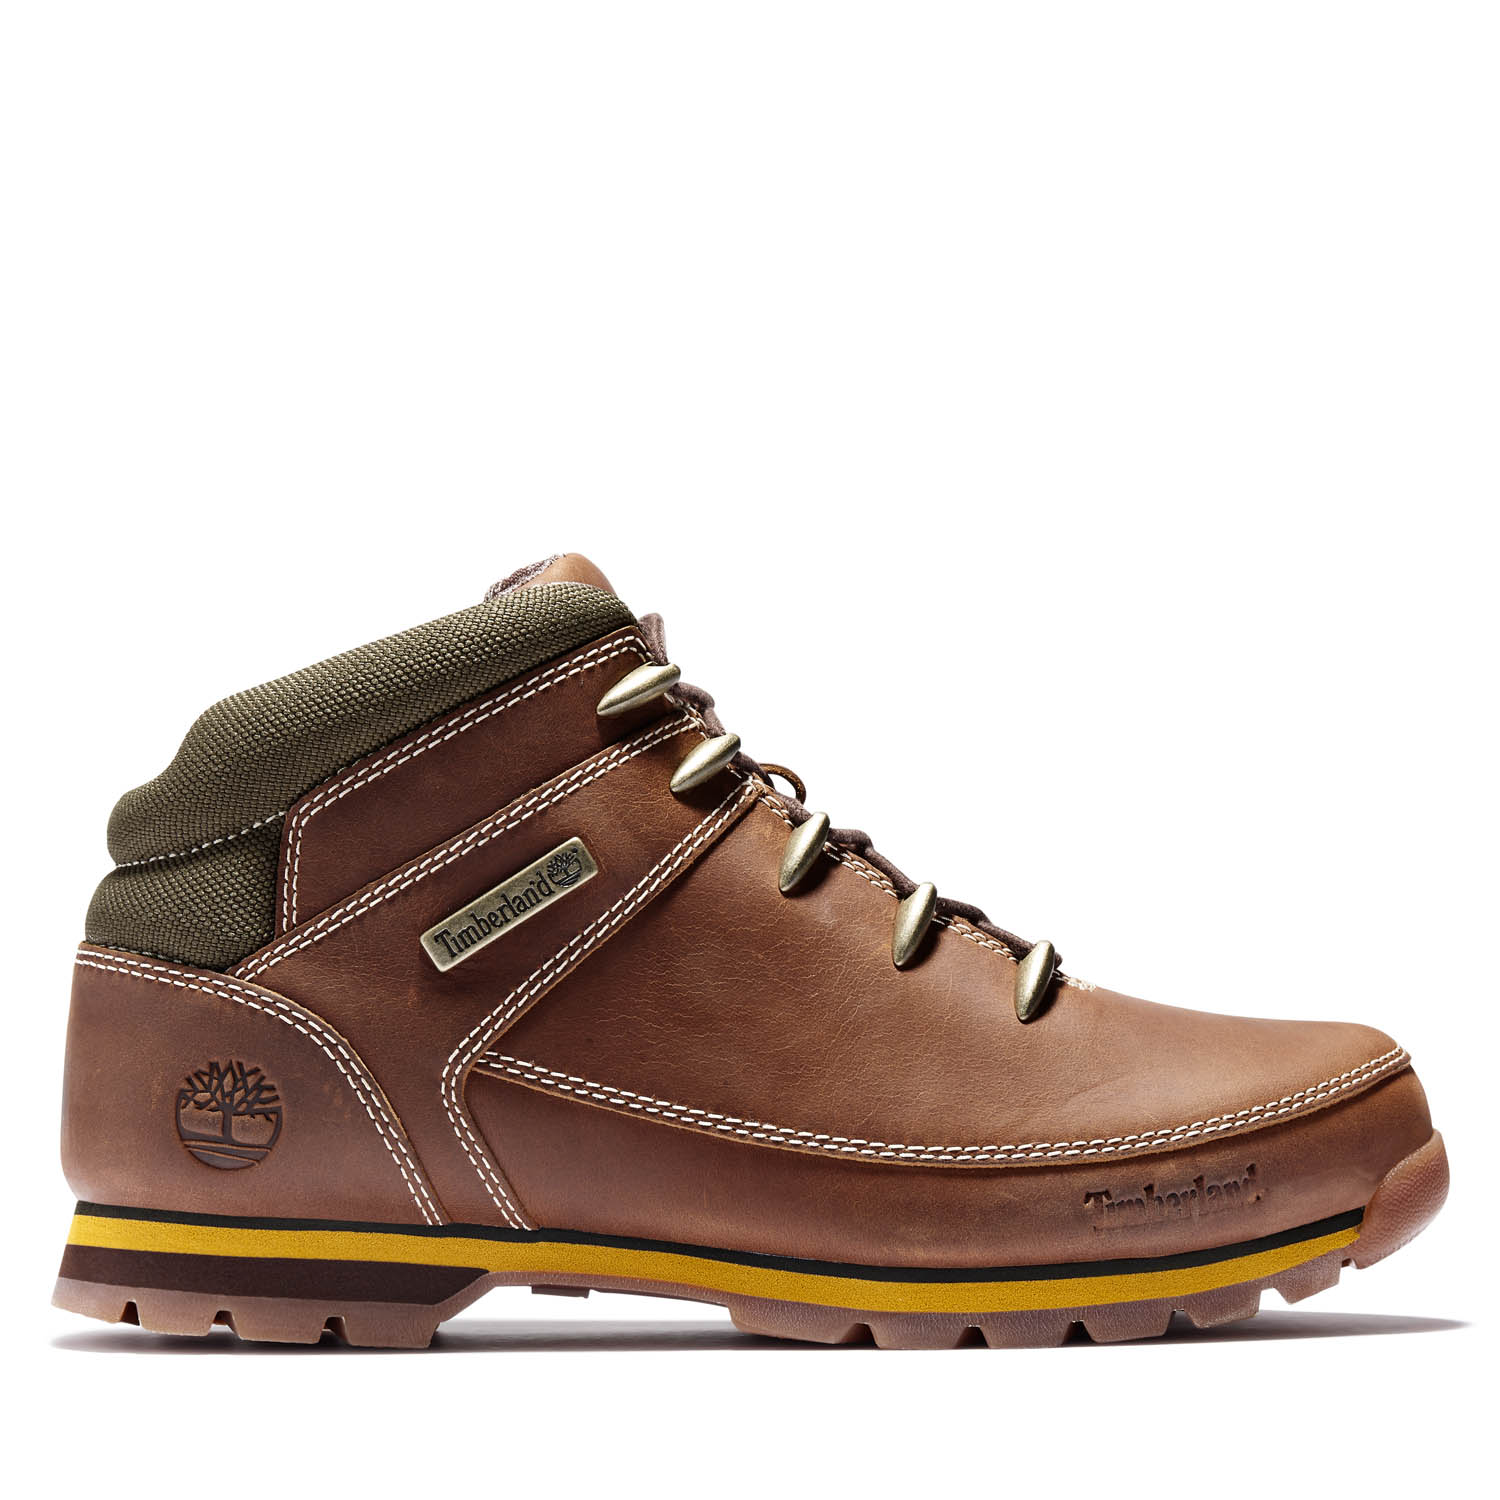 Euro Sprint Timberland marron clair